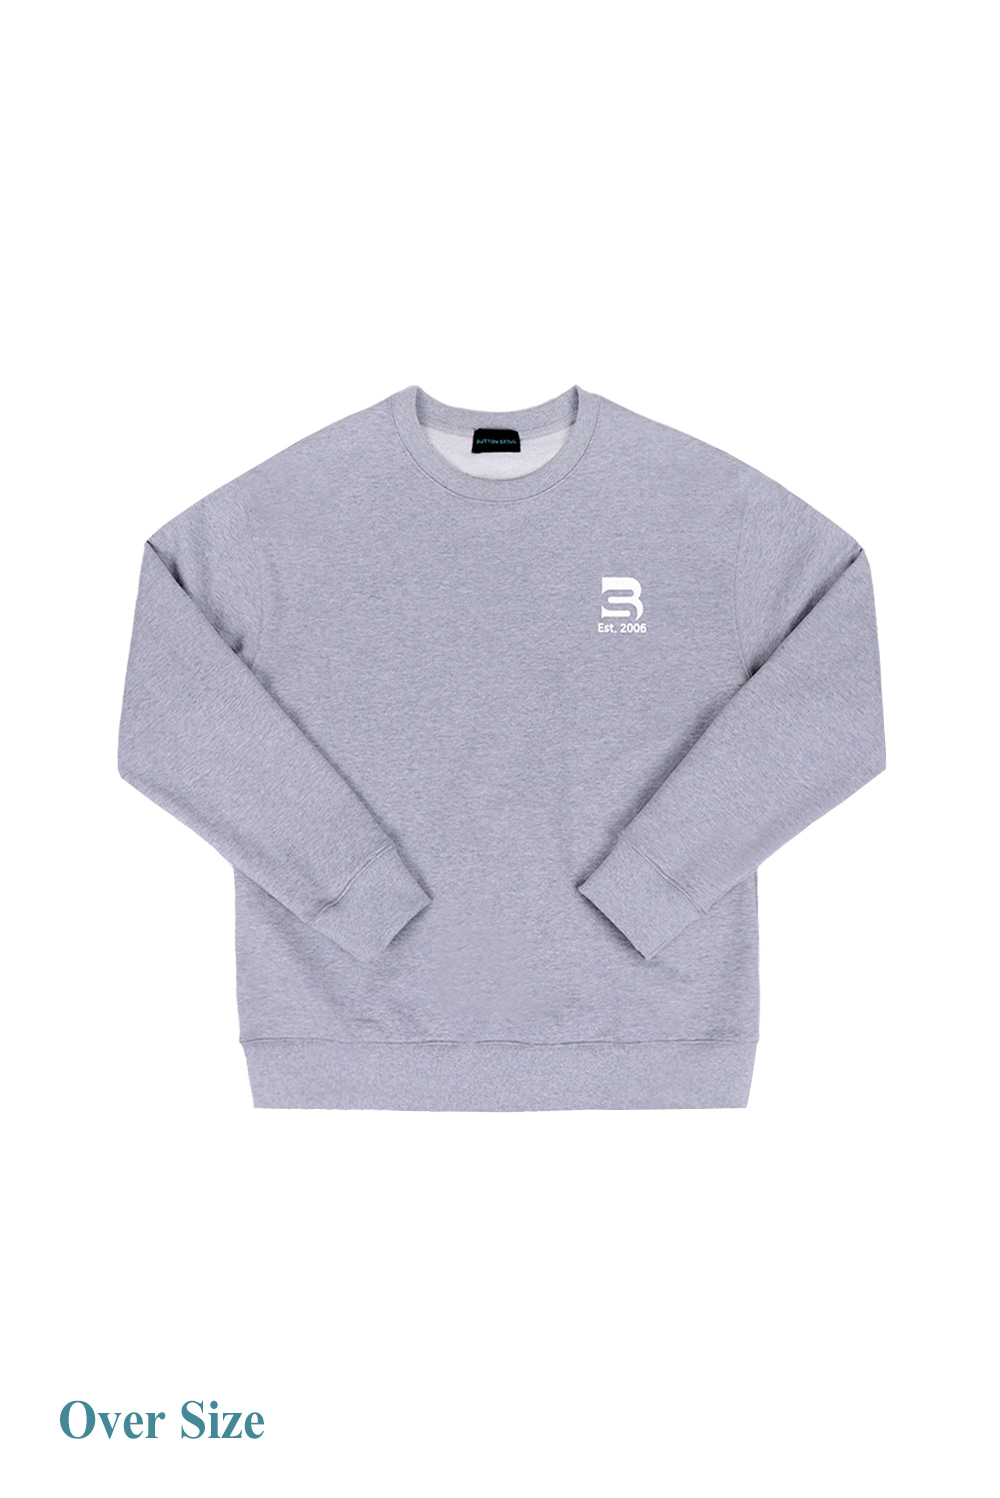 Oversize Logo Man to Man (Grey)